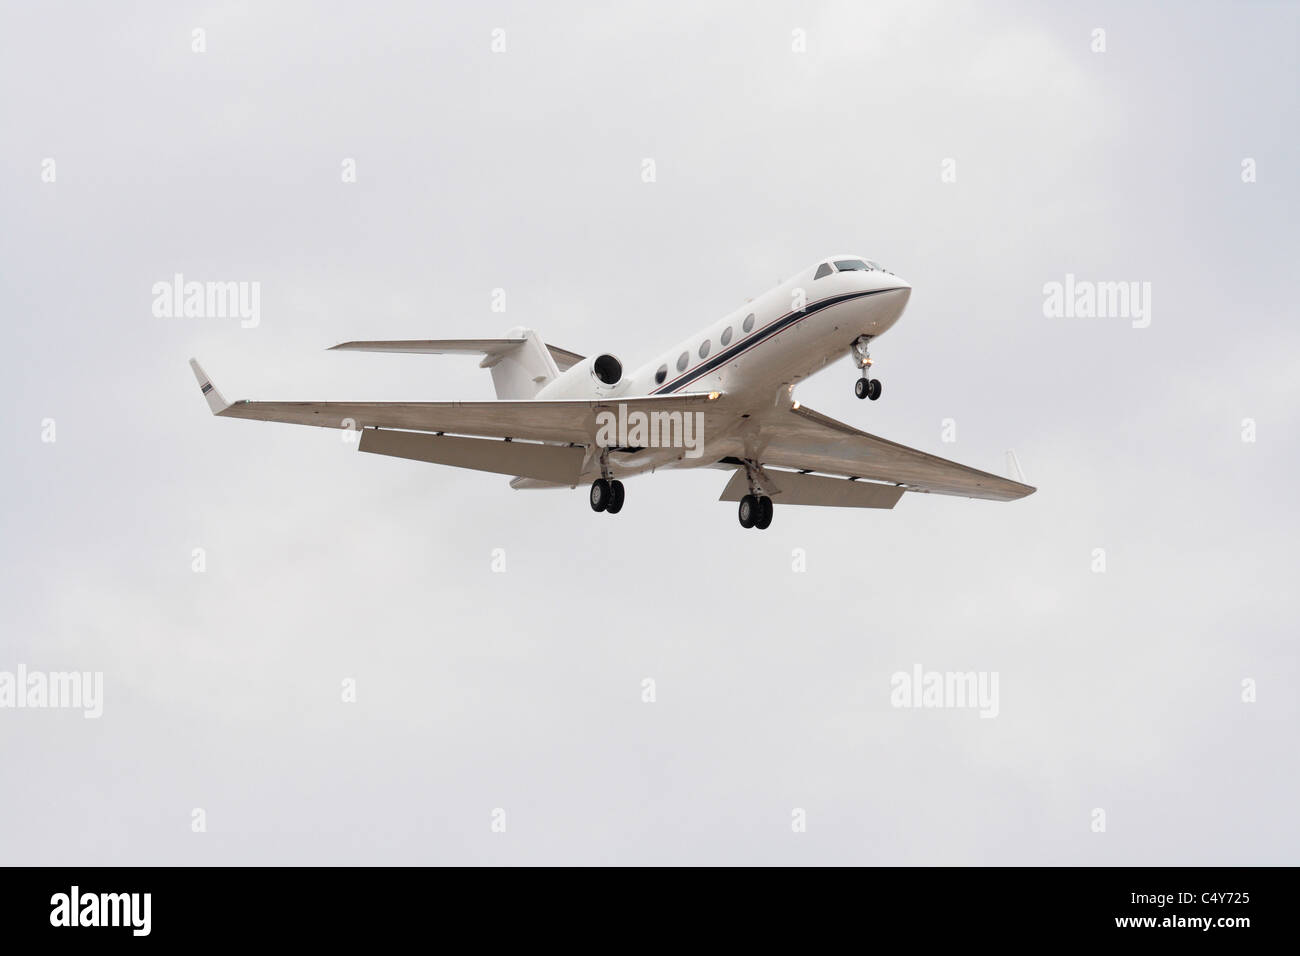 US Navy C-20A Gulfstream VIP transport jet plane on arrival - Stock Image